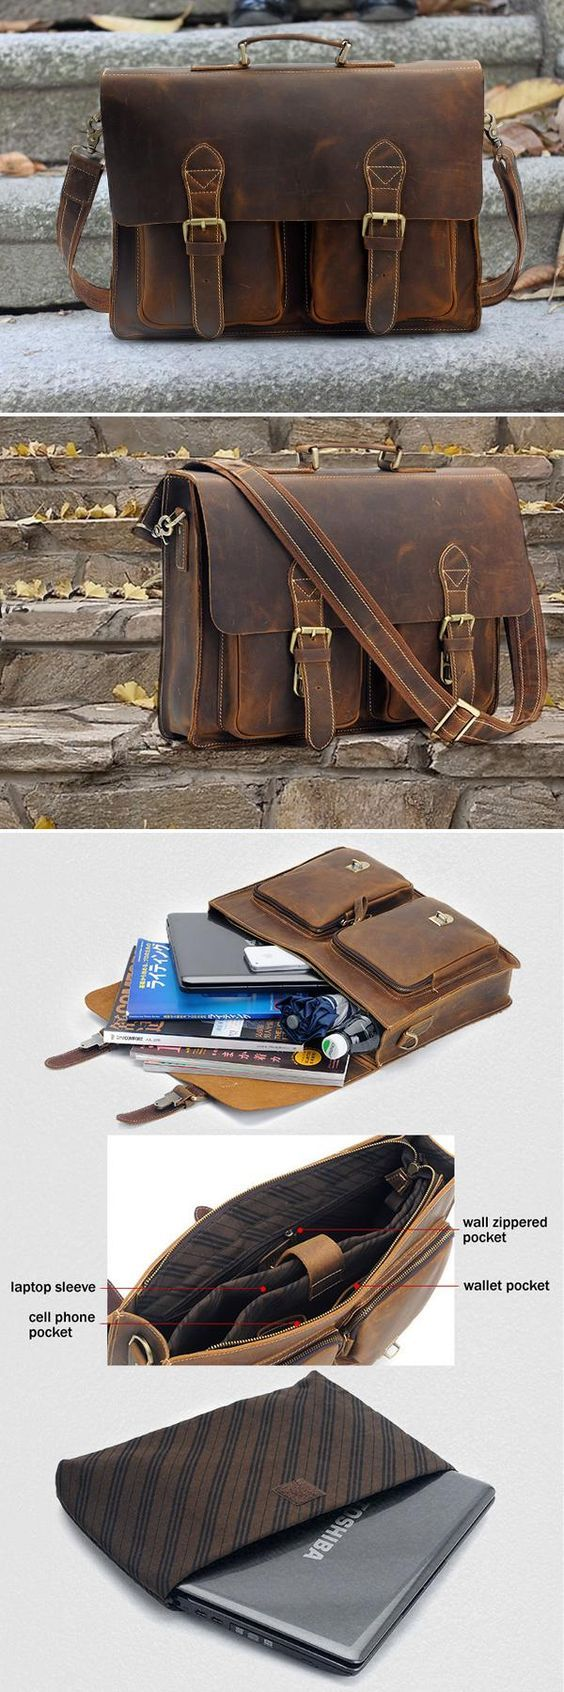 "MEN'S Vintage Leather Briefcase / Messenger / 14"" Laptop 15"" MacBook Bag(RY102) - Thumbnail 4"